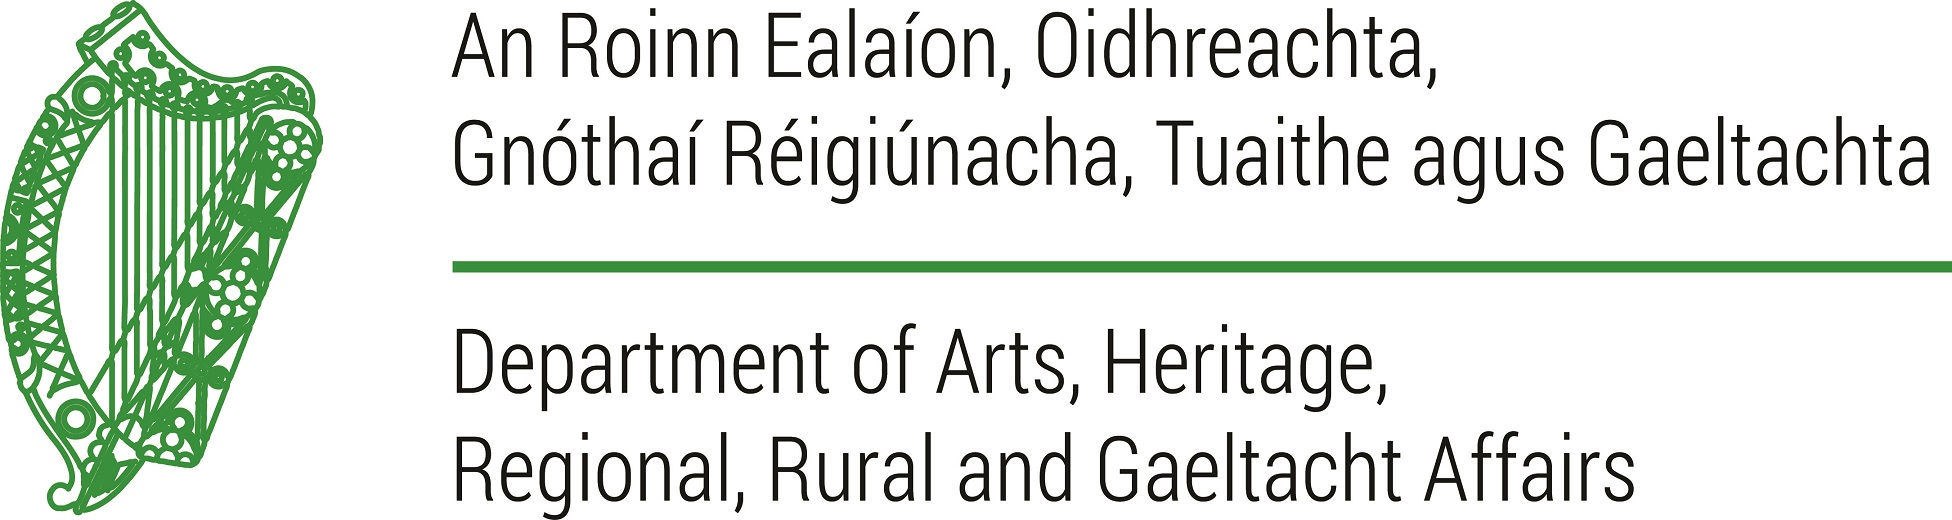 department-of-arts-heritage-regional-rural-and-gaeltacht-affairs